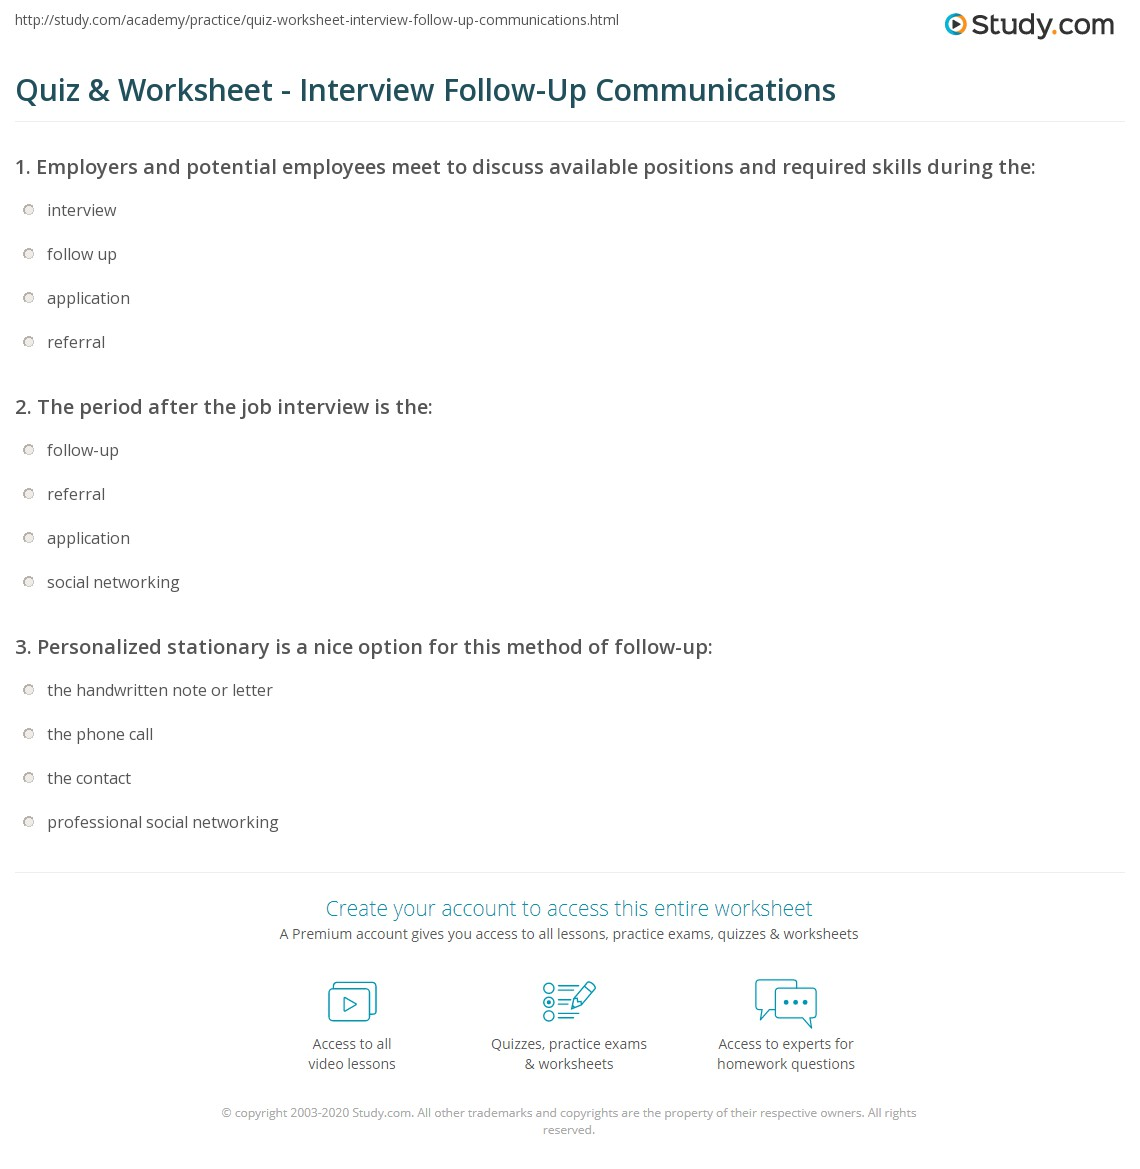 quiz worksheet interview follow up communications study com the period after the job interview is the follow up